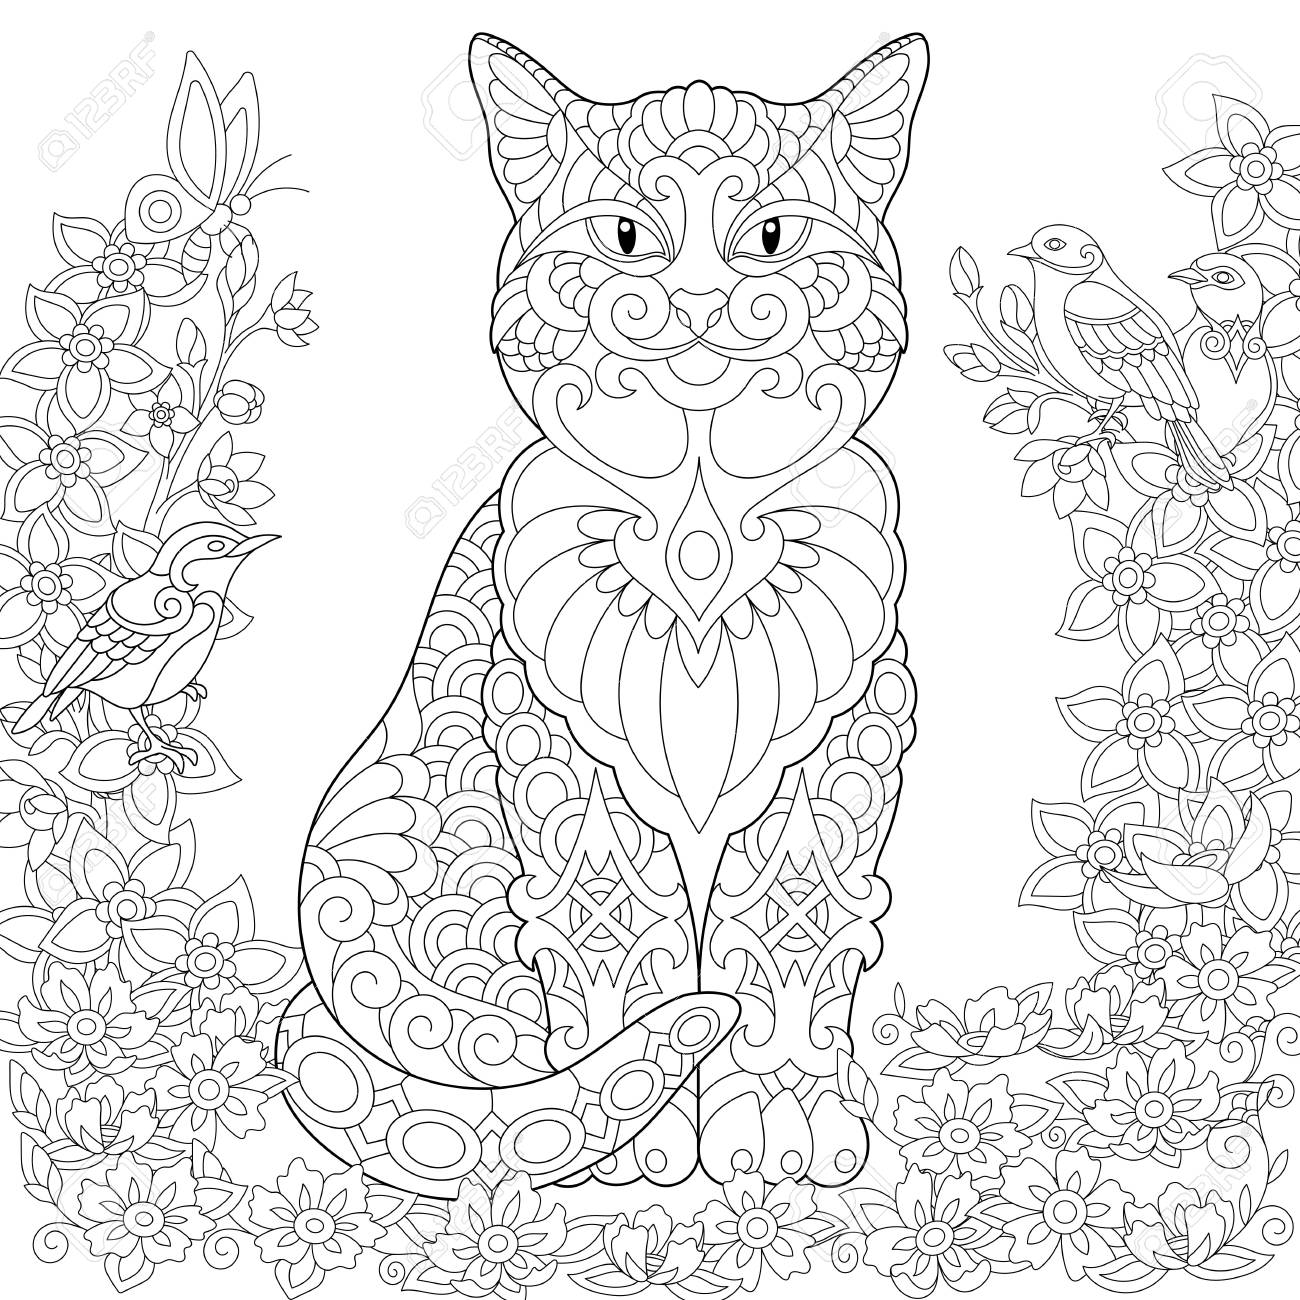 - Cat Coloring Page. Adult Coloring Book Idea. Anti-stress Freehand